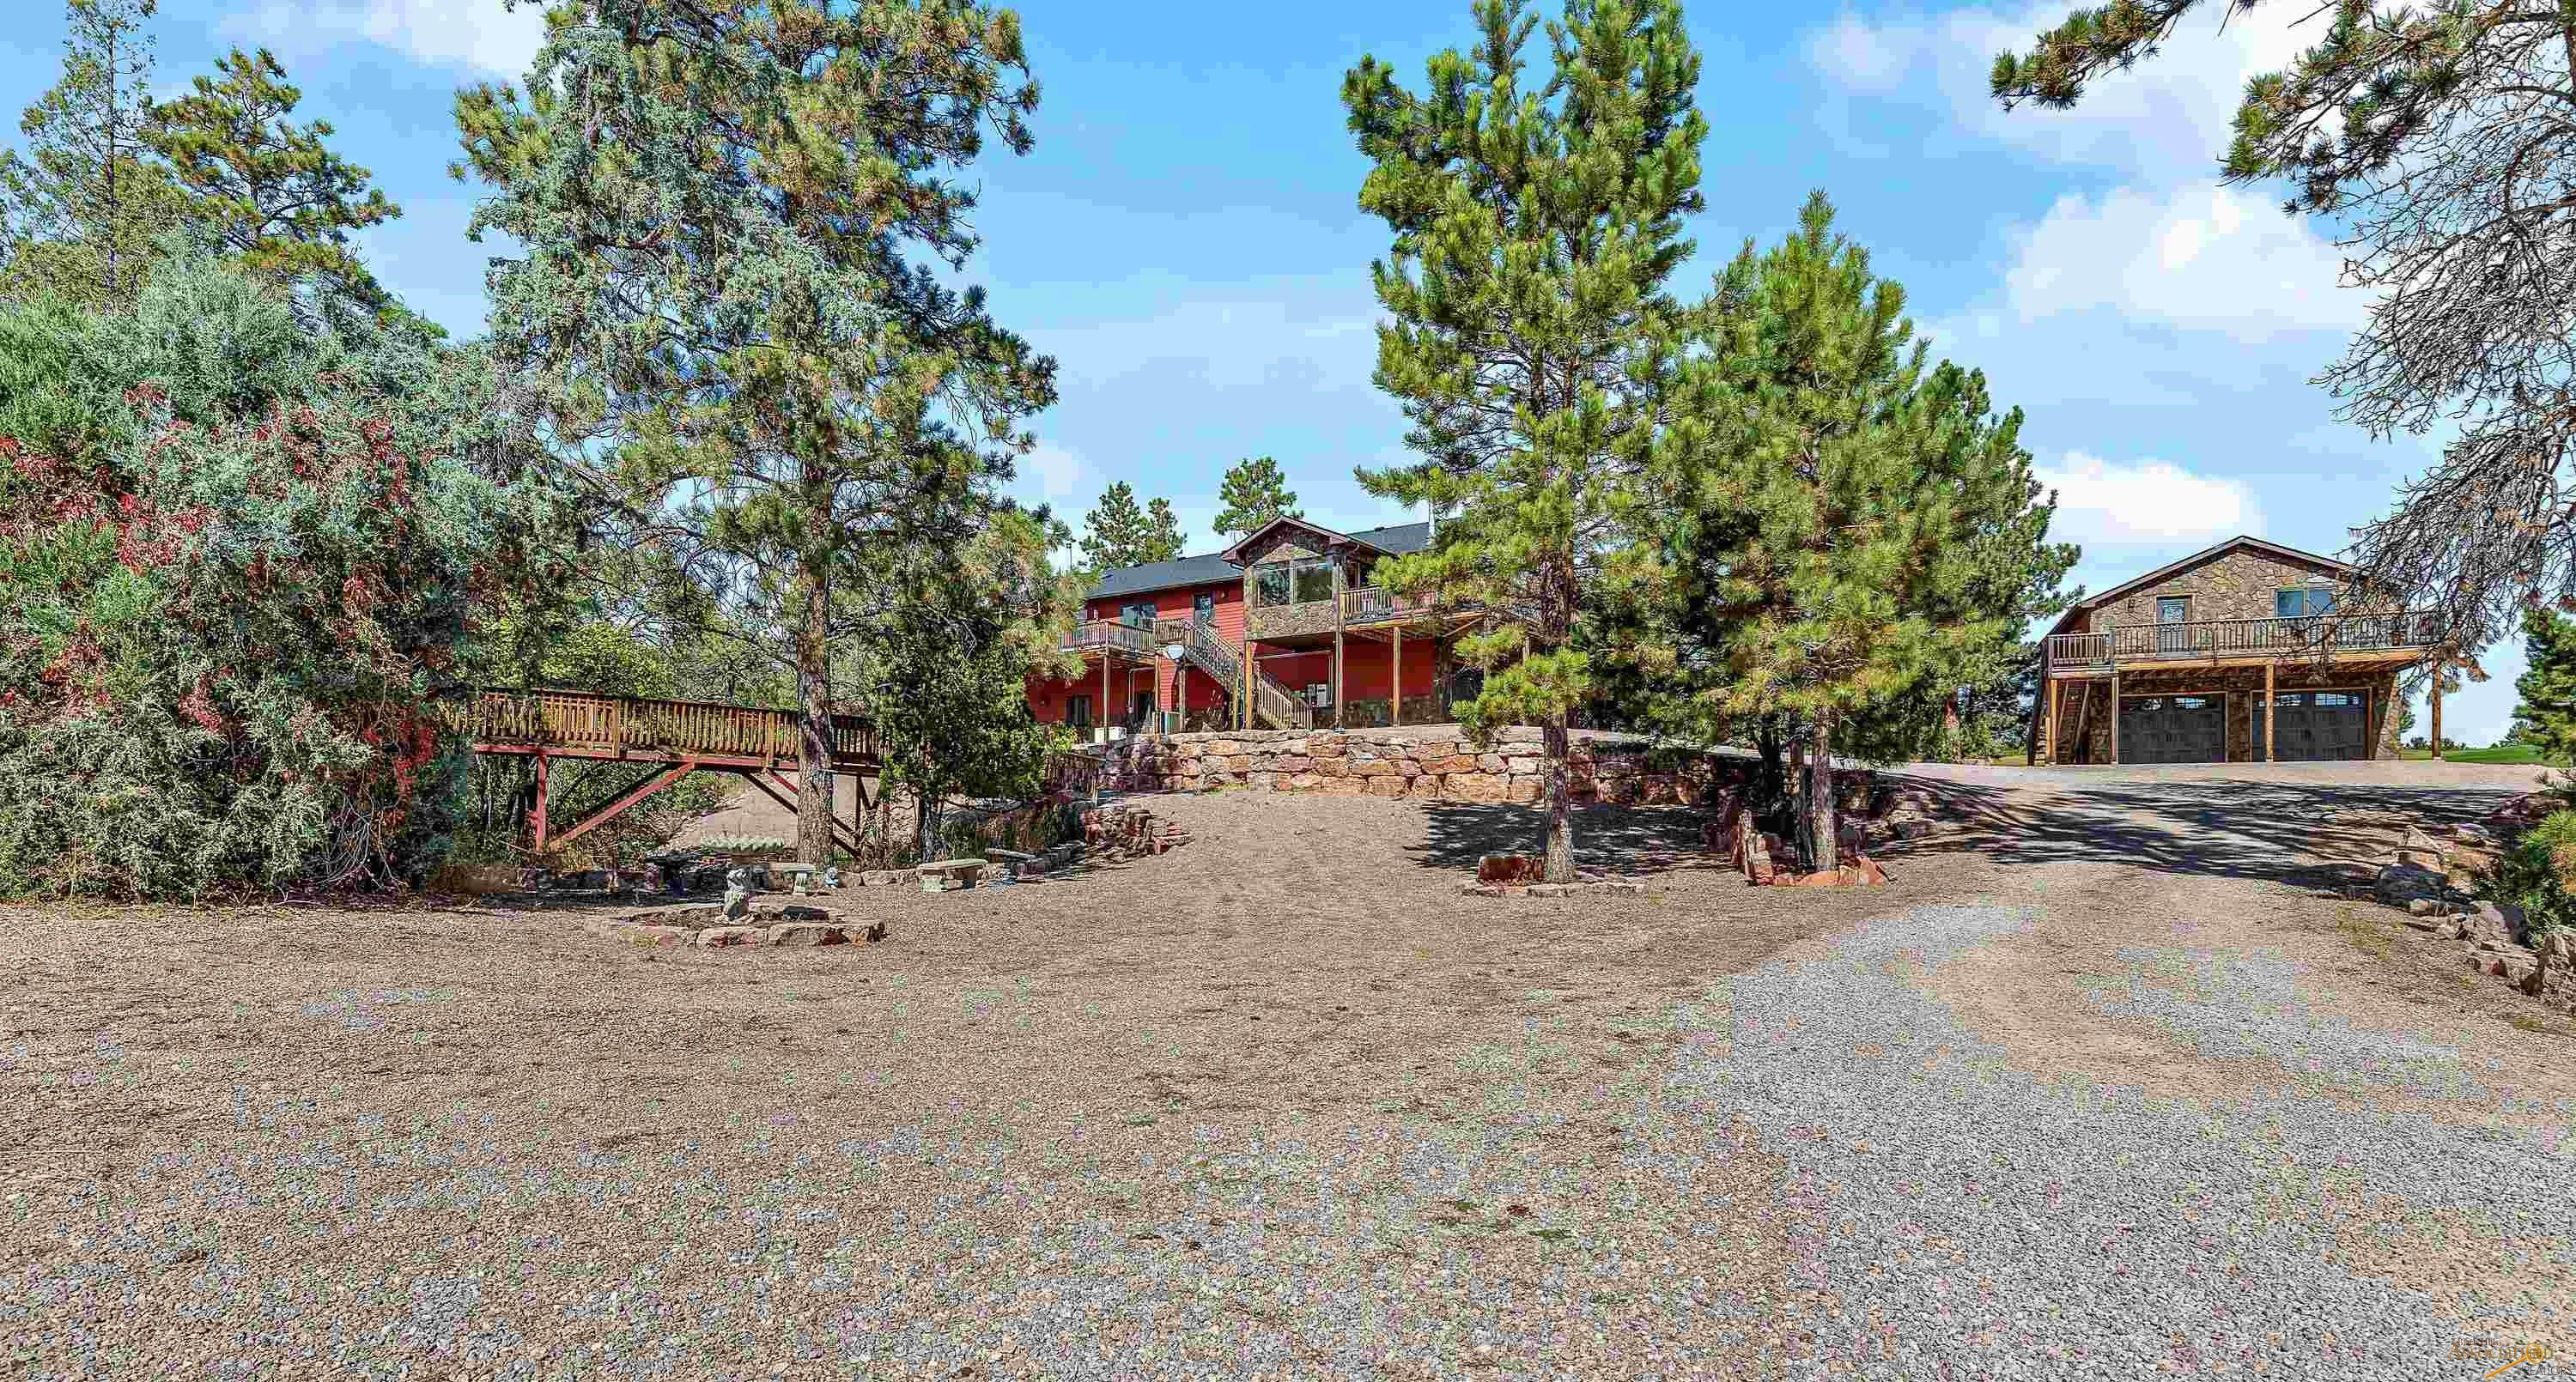 """Here is a Private Lifestyle on SD's Premier Public Golf Course. This builder-owned home is on 1-acre, & situated in a """"V"""" between the front 9 and back 9 of the Southern Hills Golf Course. From this private location you have views of 3 driving ranges & 8 golf holes. +4200 sq ft of decks, including a 33x12.5 heated in-ground pool with LED lighting and 60-inch waterfall, an outdoor kitchen, and a 5-man sauna.  This is outdoor living at its finest.  Open-concept kitchen, living room, dining area, complete with an office & sun room. The large master en'suite has a custom tile walk-in shower, jet-tub, dual sinks, 2 walk-in closets, and main floor laundry.  5 bedrooms total: 2 bedrooms on the main floor & 3 beds in the walk-out basement.  The 4-car attached (drive under) garage is finished, and even has a half bath, and the detached 2-car garage has bonus finished entertainment (great room) space upstairs. Even if golf is not your sport of choice, the area provides an abundance of amenities."""